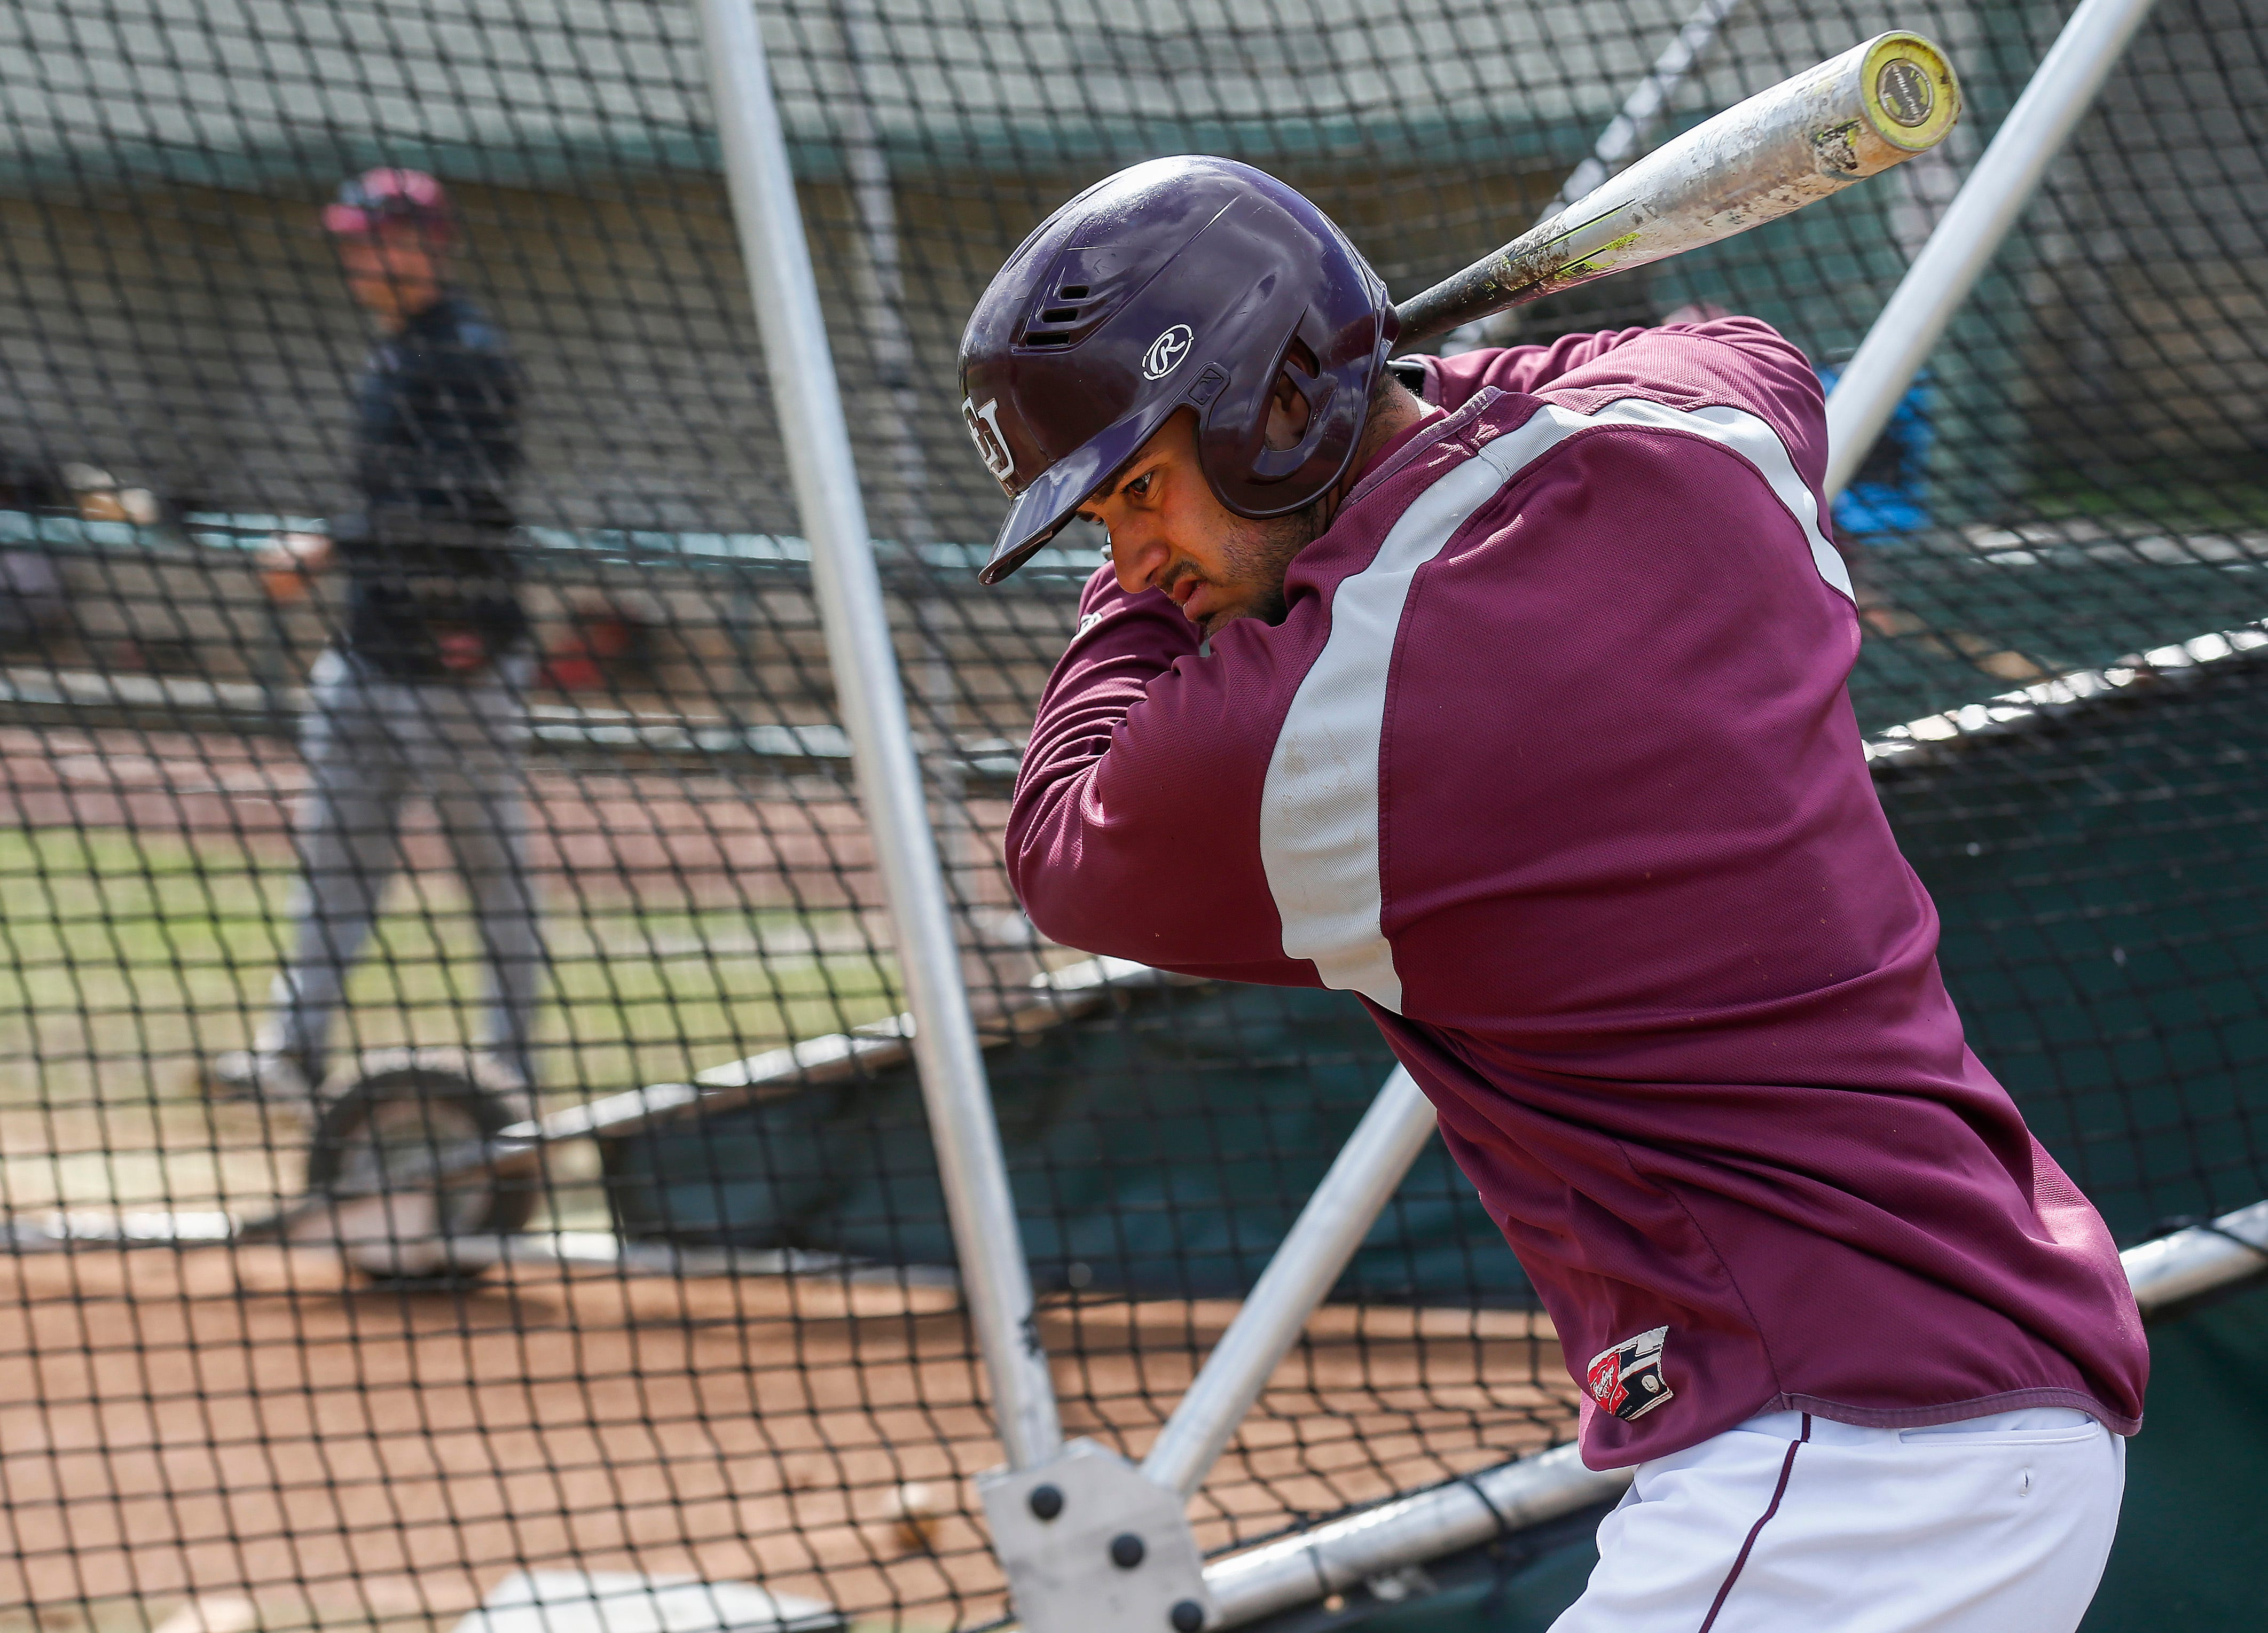 Jose Vargas, a shortstop at Evangel University, gets ready for batting practice before a double-header on Friday, April 19, 2019. Vargas, a senior, is stuck in limbo because of what is happening in his home country of Venezuela.